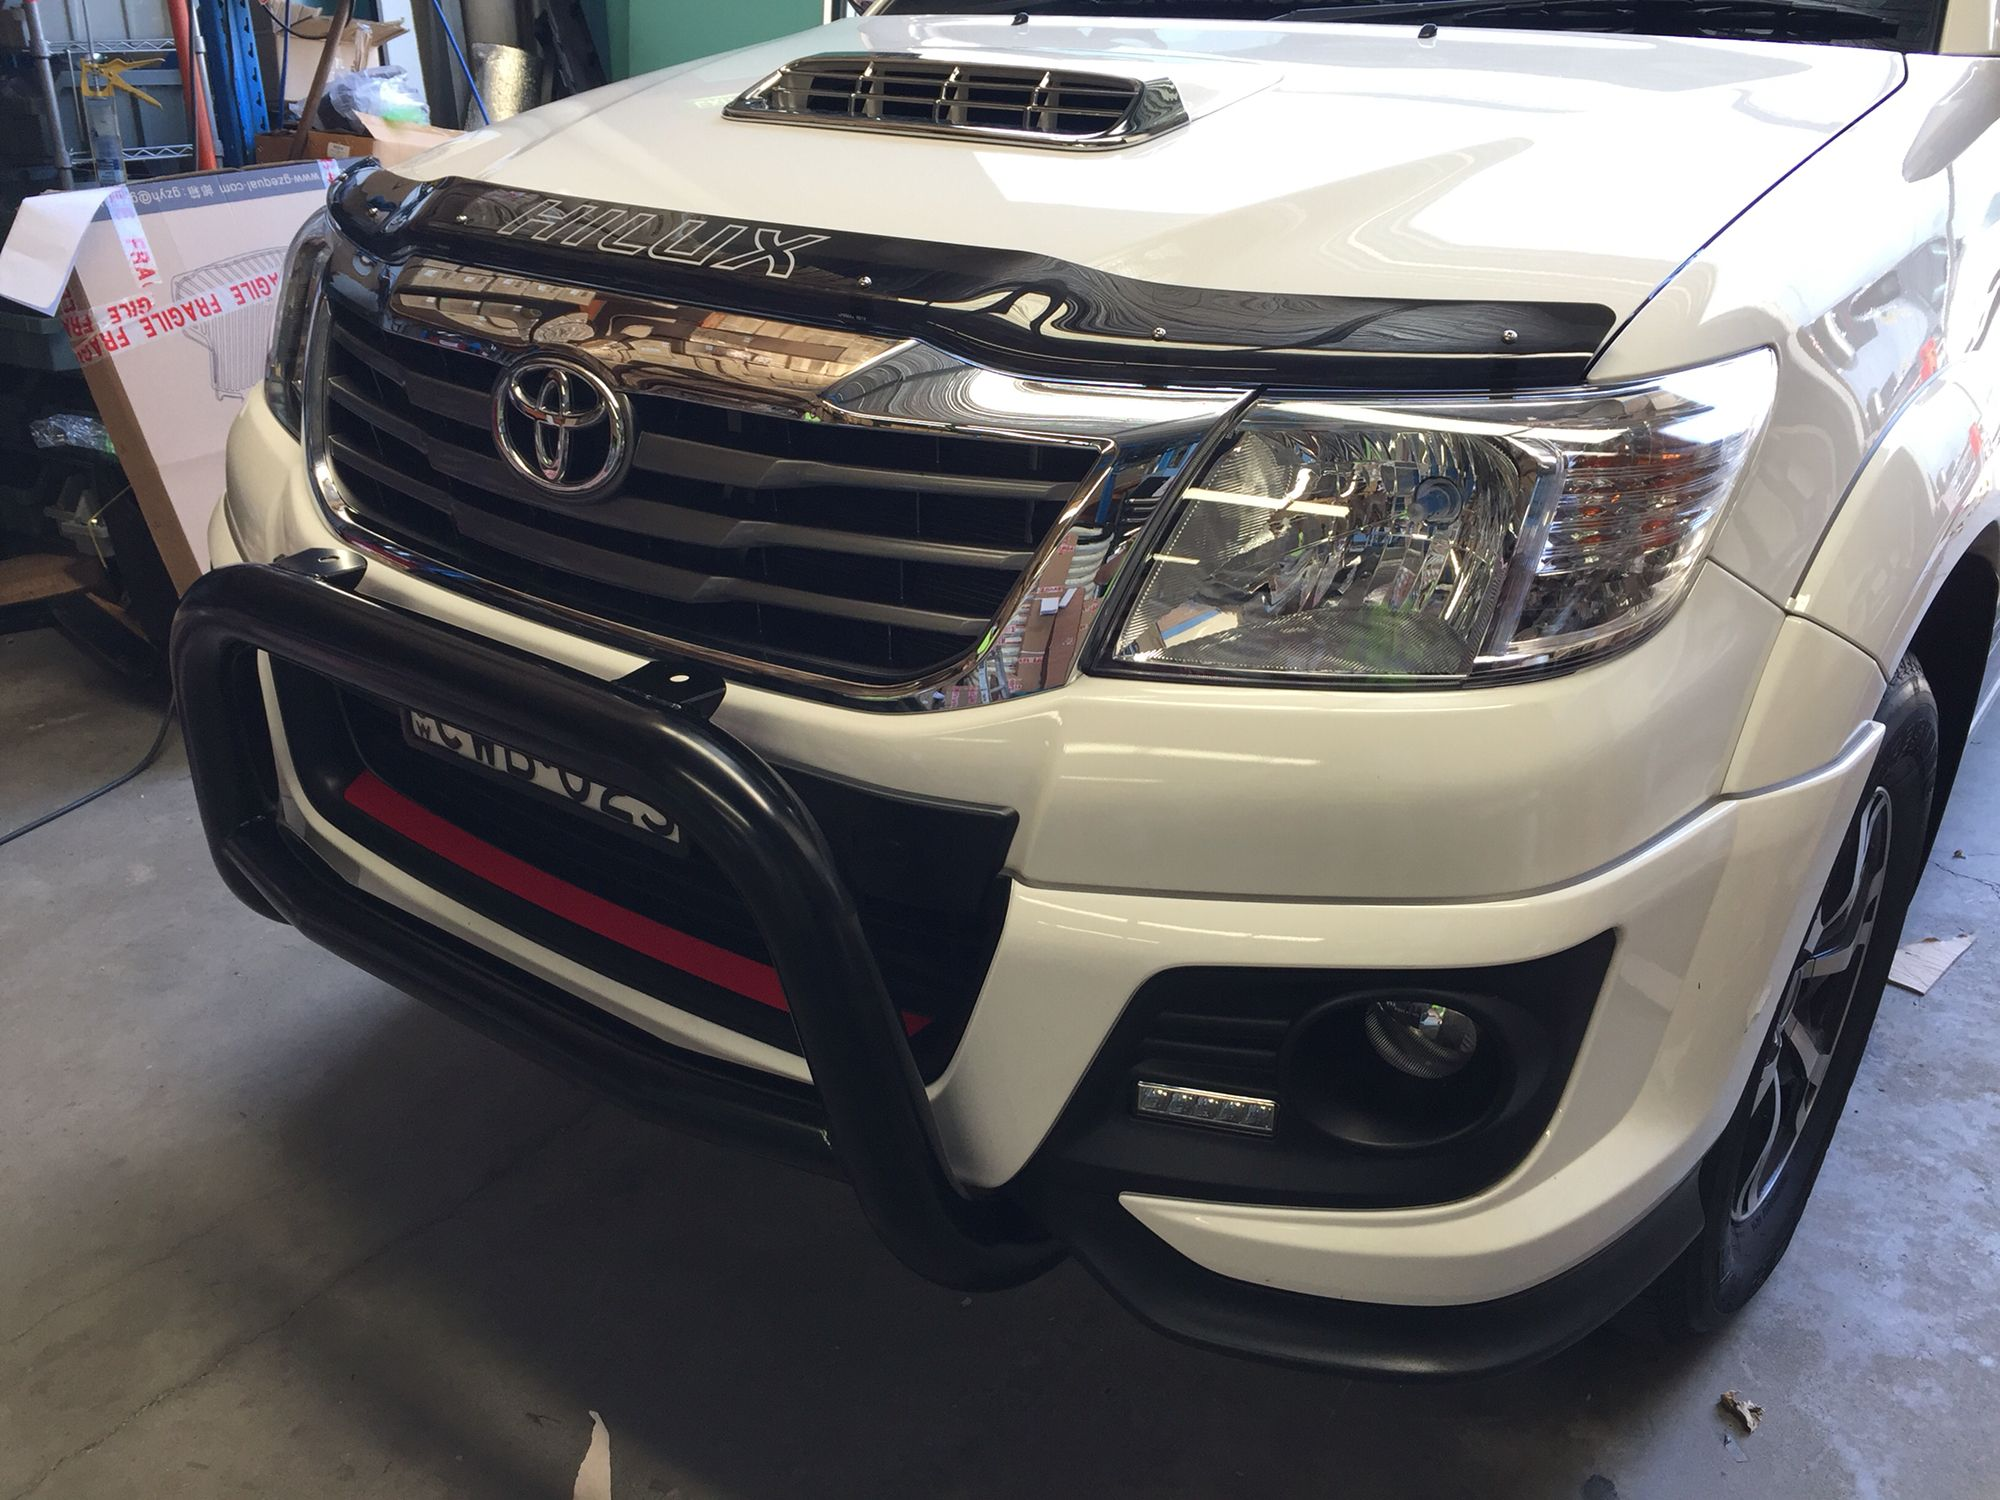 Toyota hilux trd low nudge bar black